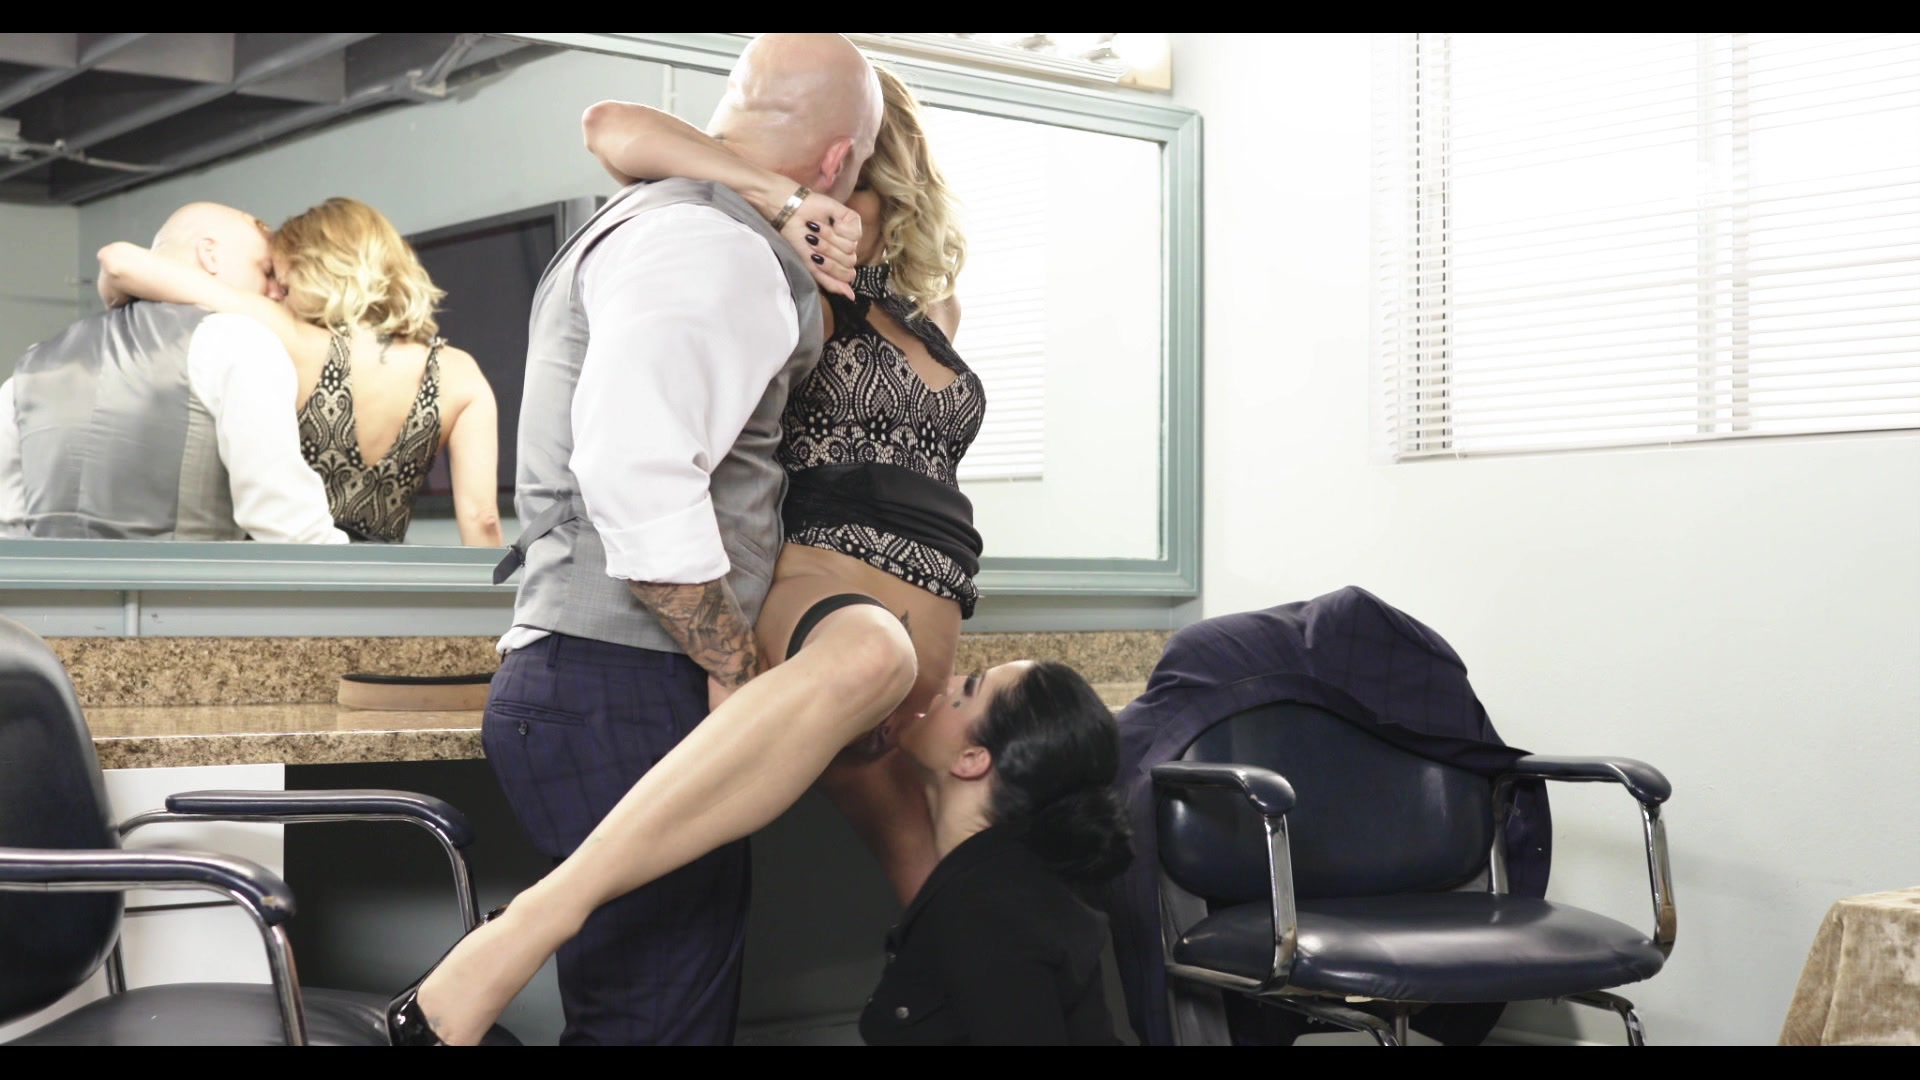 Scene with Jessica Drake, Derrick Pierce and Katrina Jade - image 12 out of 20